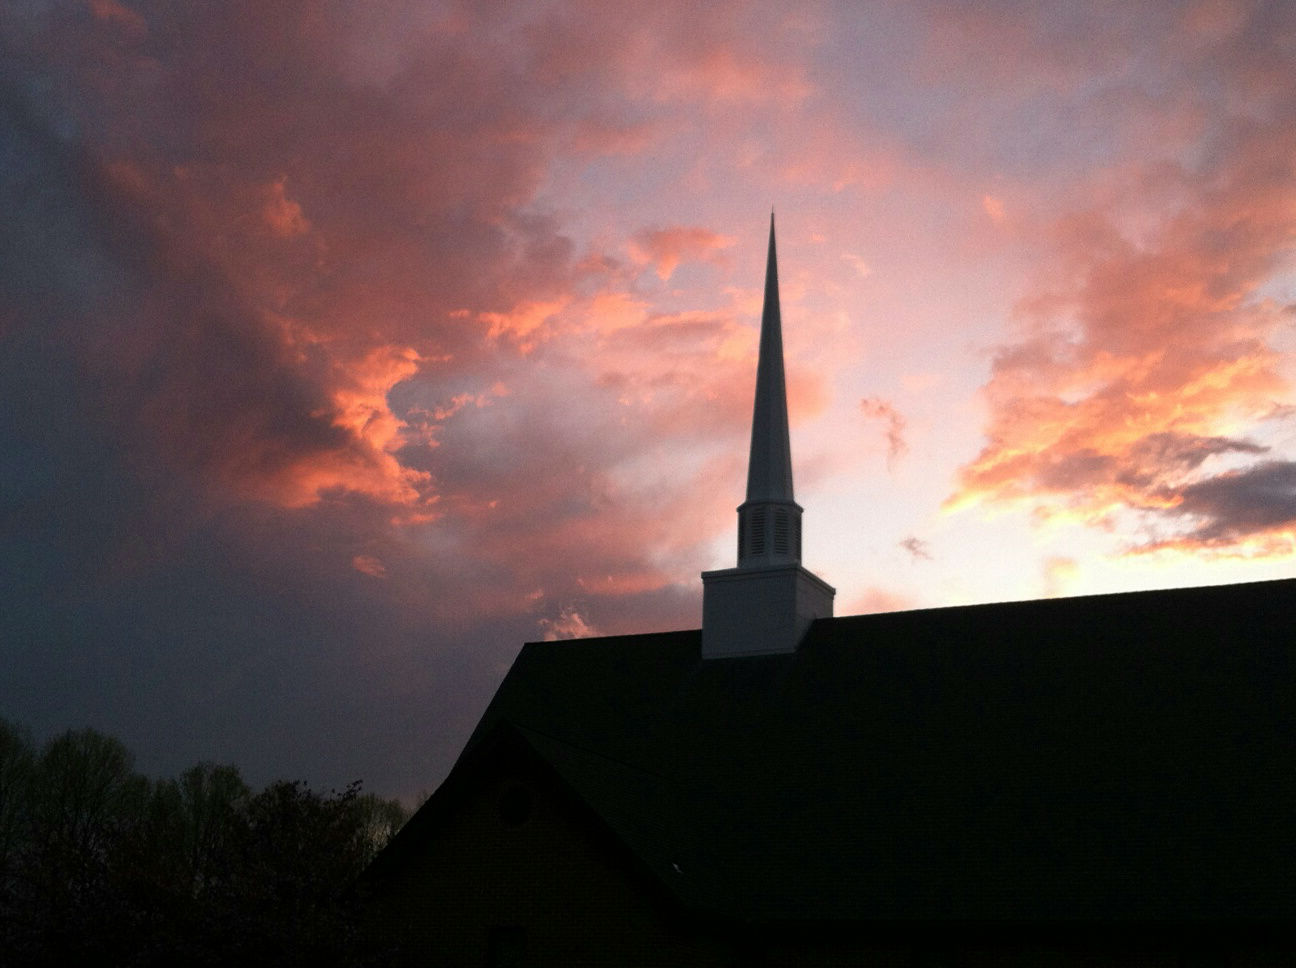 Our steeple at sunset